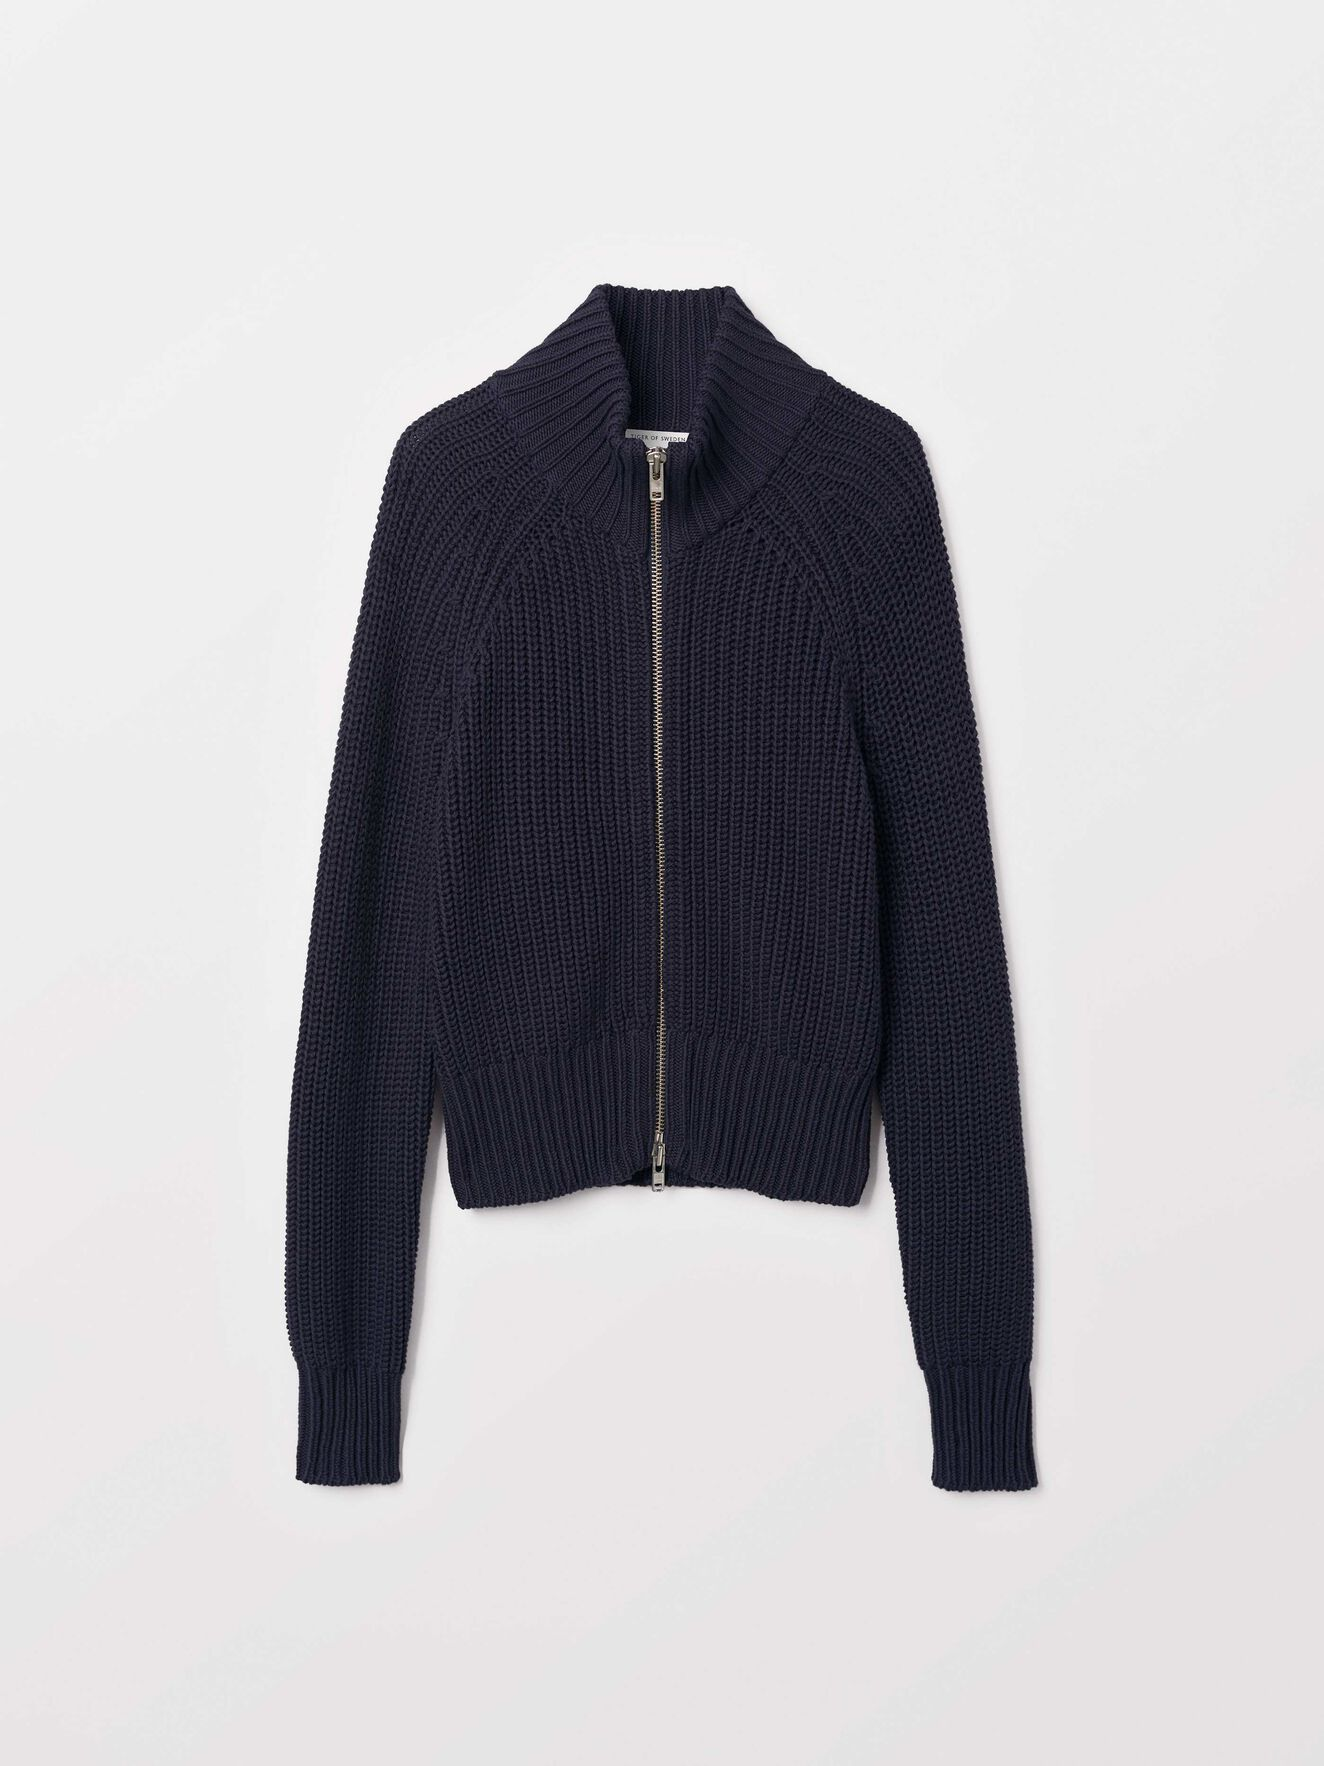 Cabalia Cardigan in Blue from Tiger of Sweden